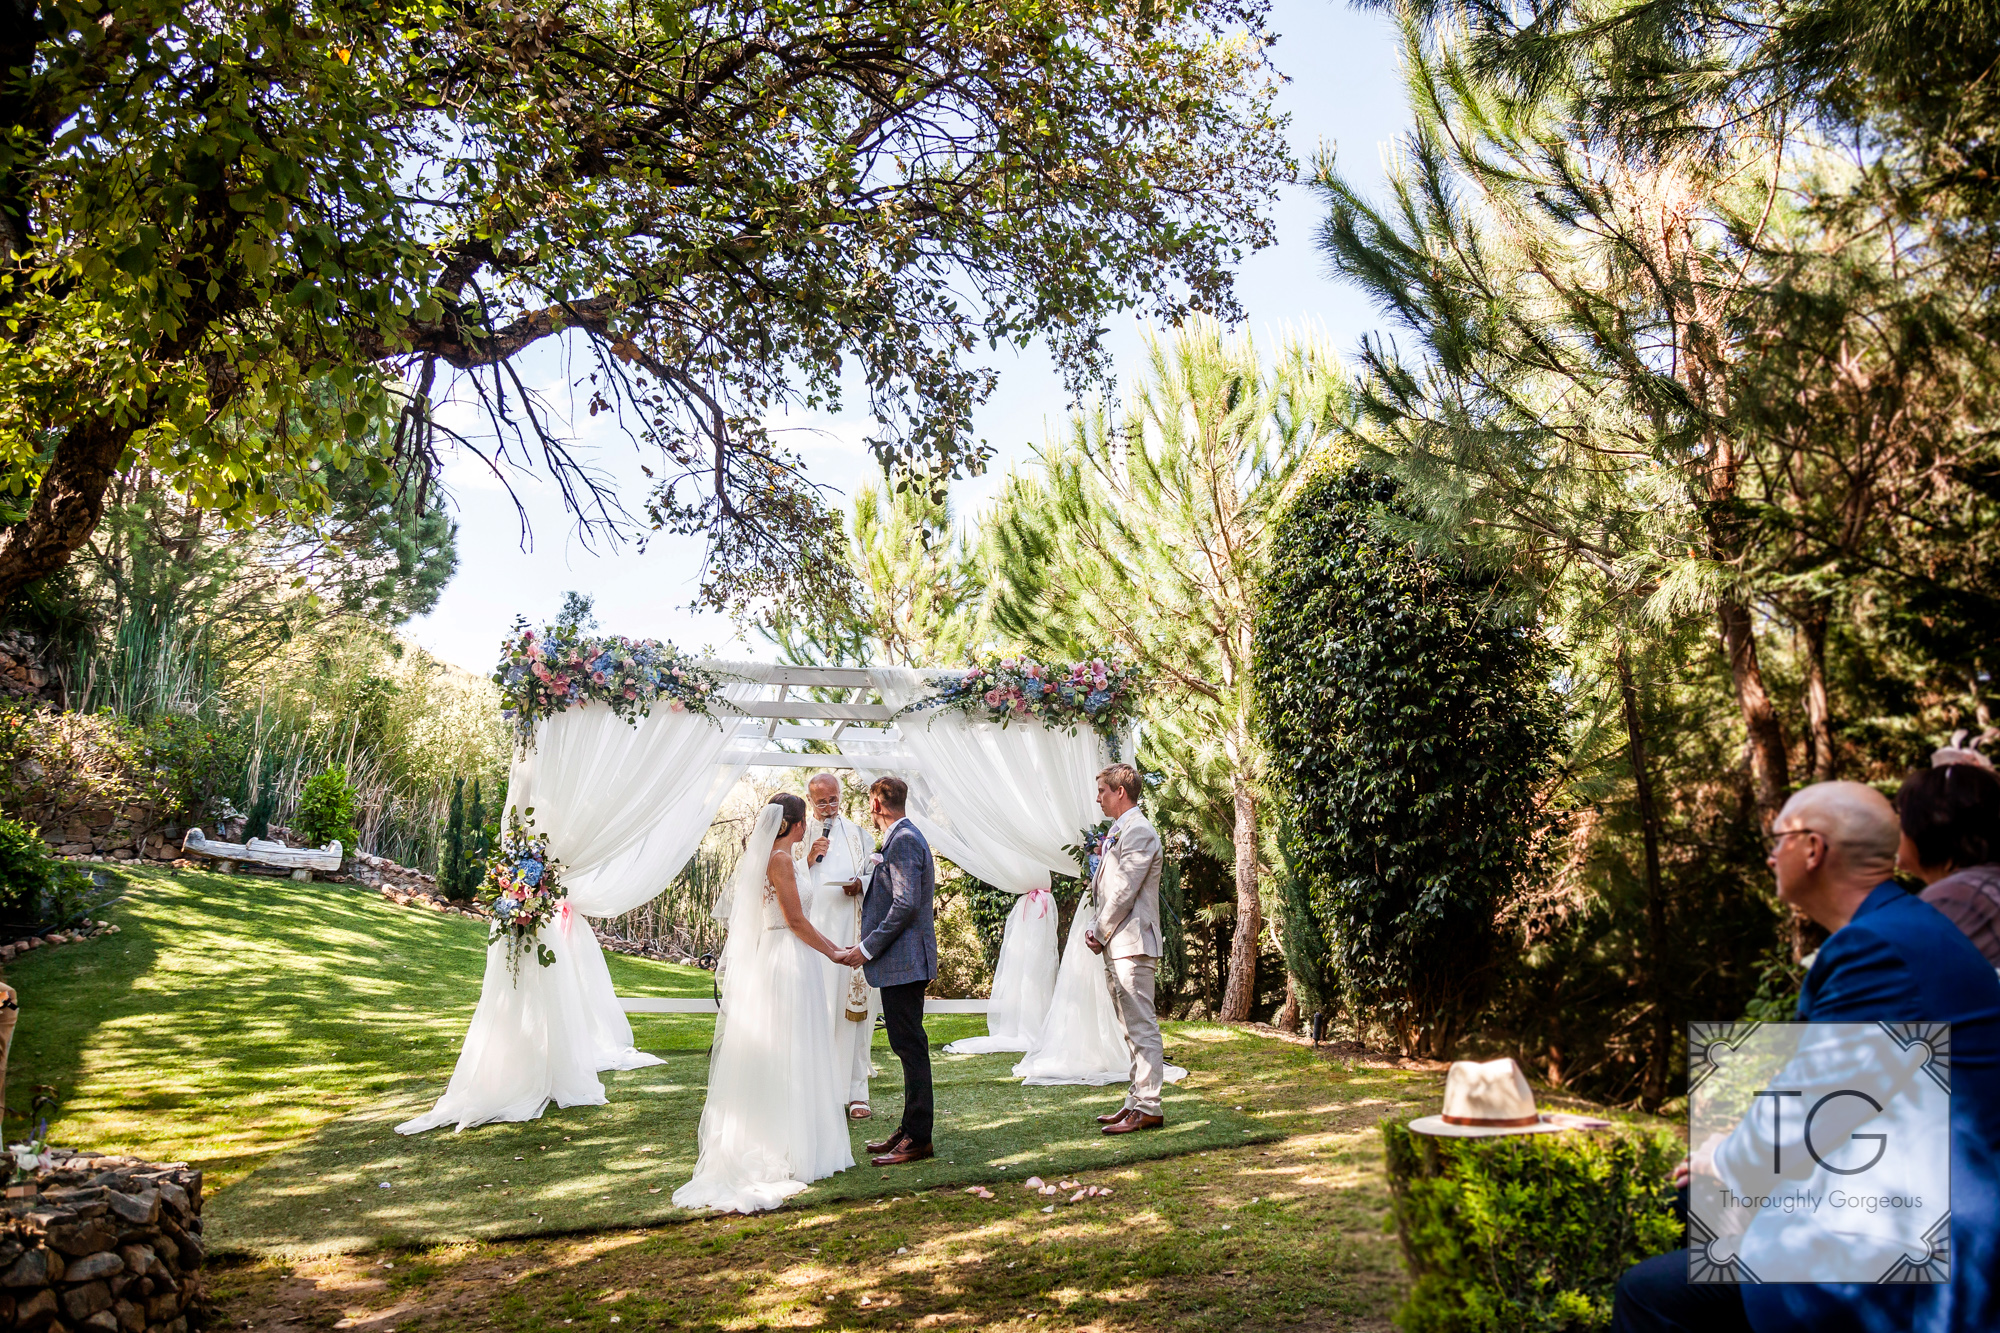 The wedding ceremony in the beautiful finca gardens